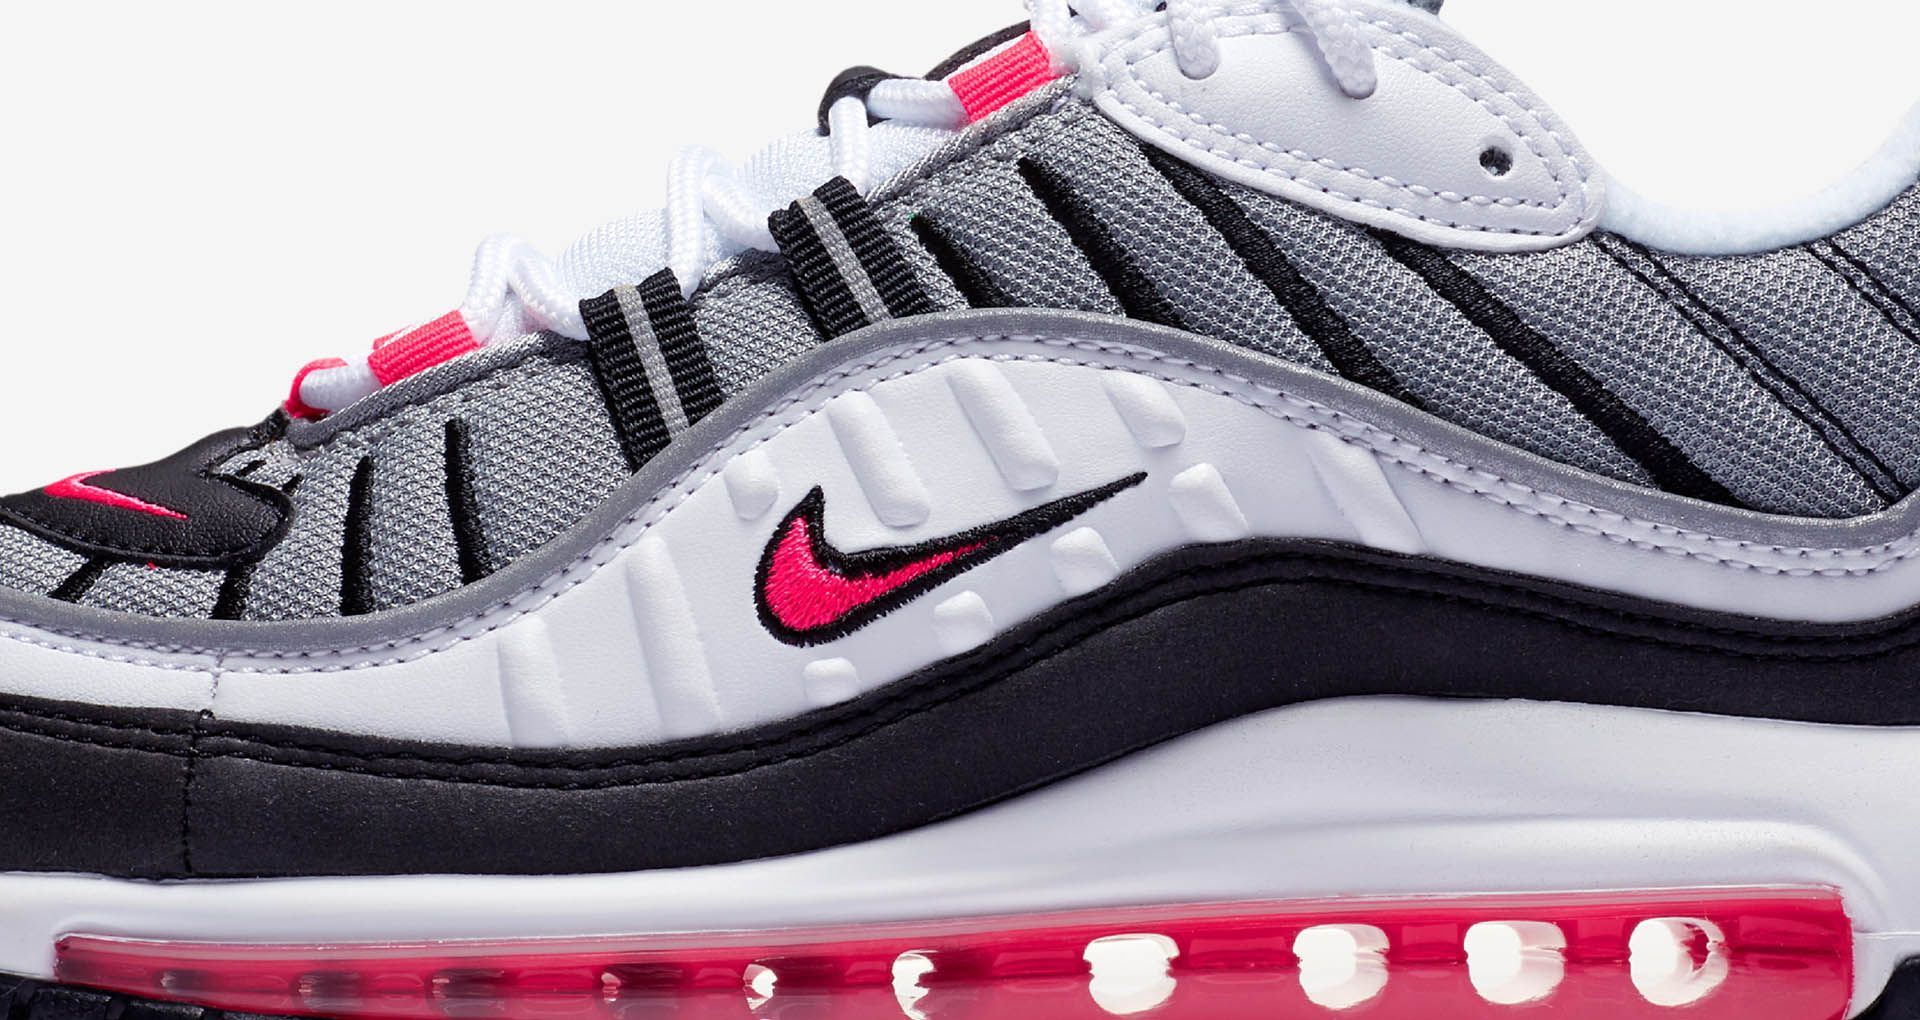 separation shoes 9ff2f 02daf Nike Women's Air Max 98 'White & Solar Red & Reflect ...